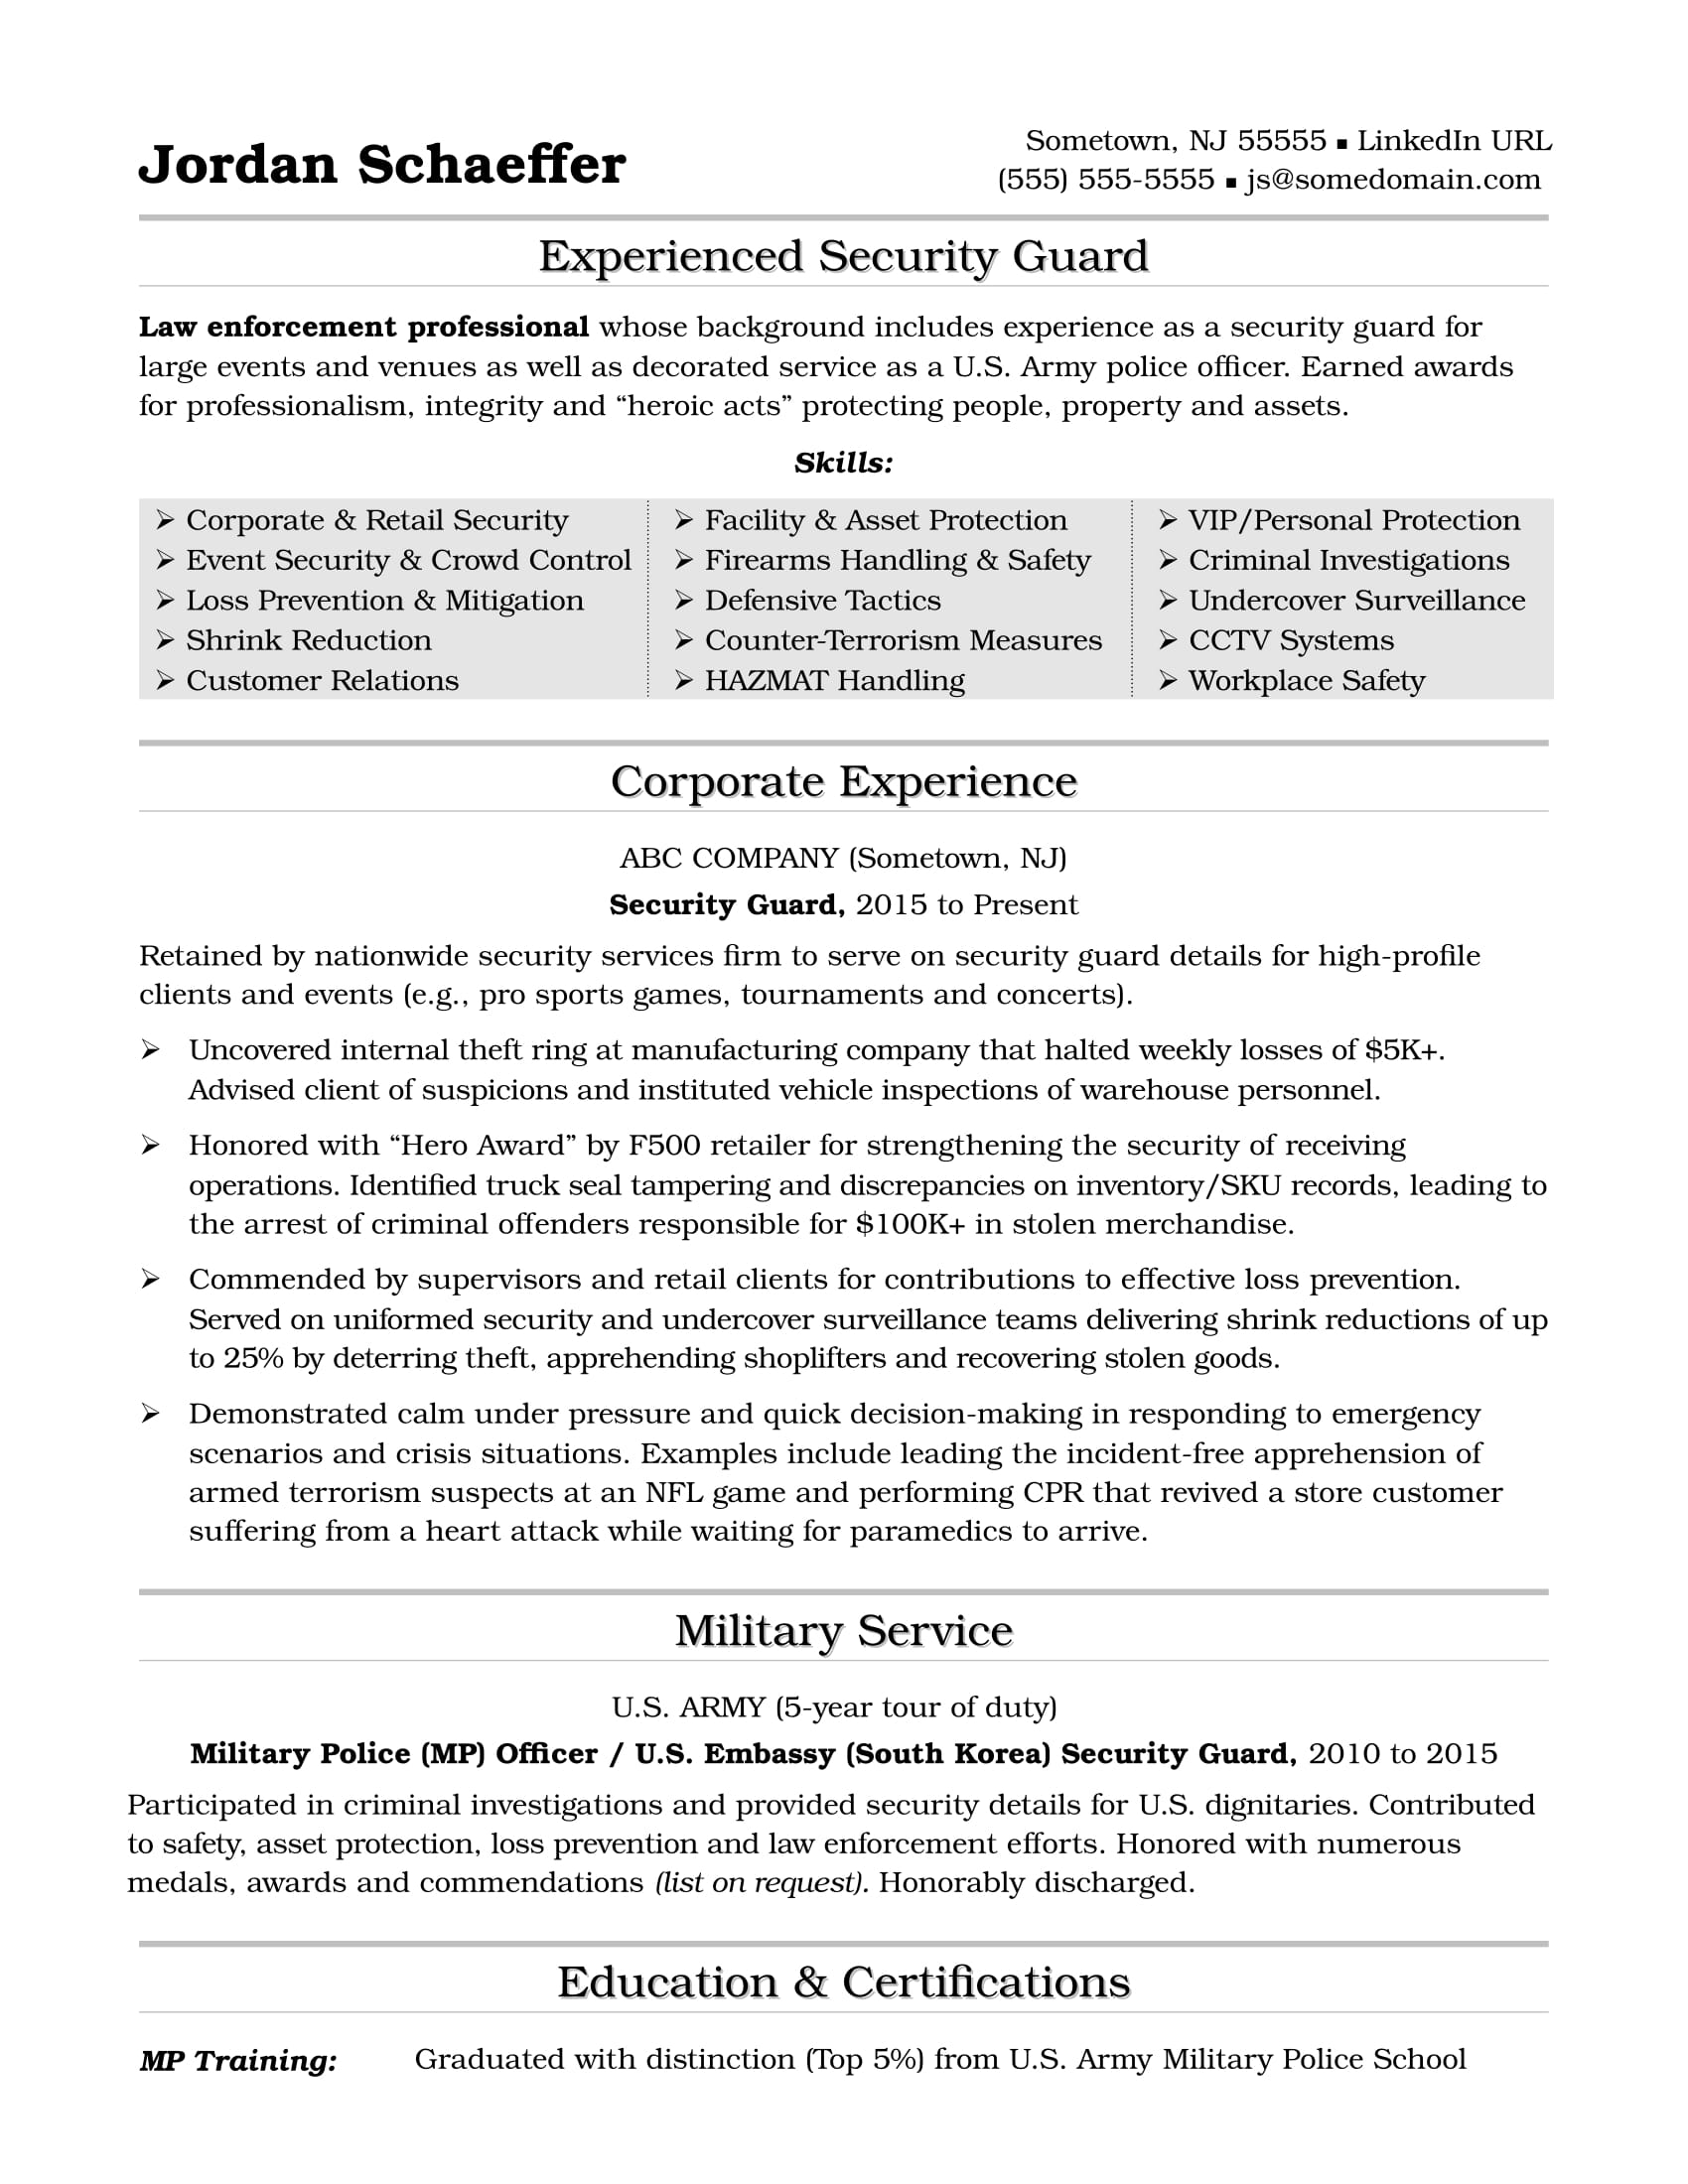 resume Security Guard Resume Sample security guard resume sample monster com sample